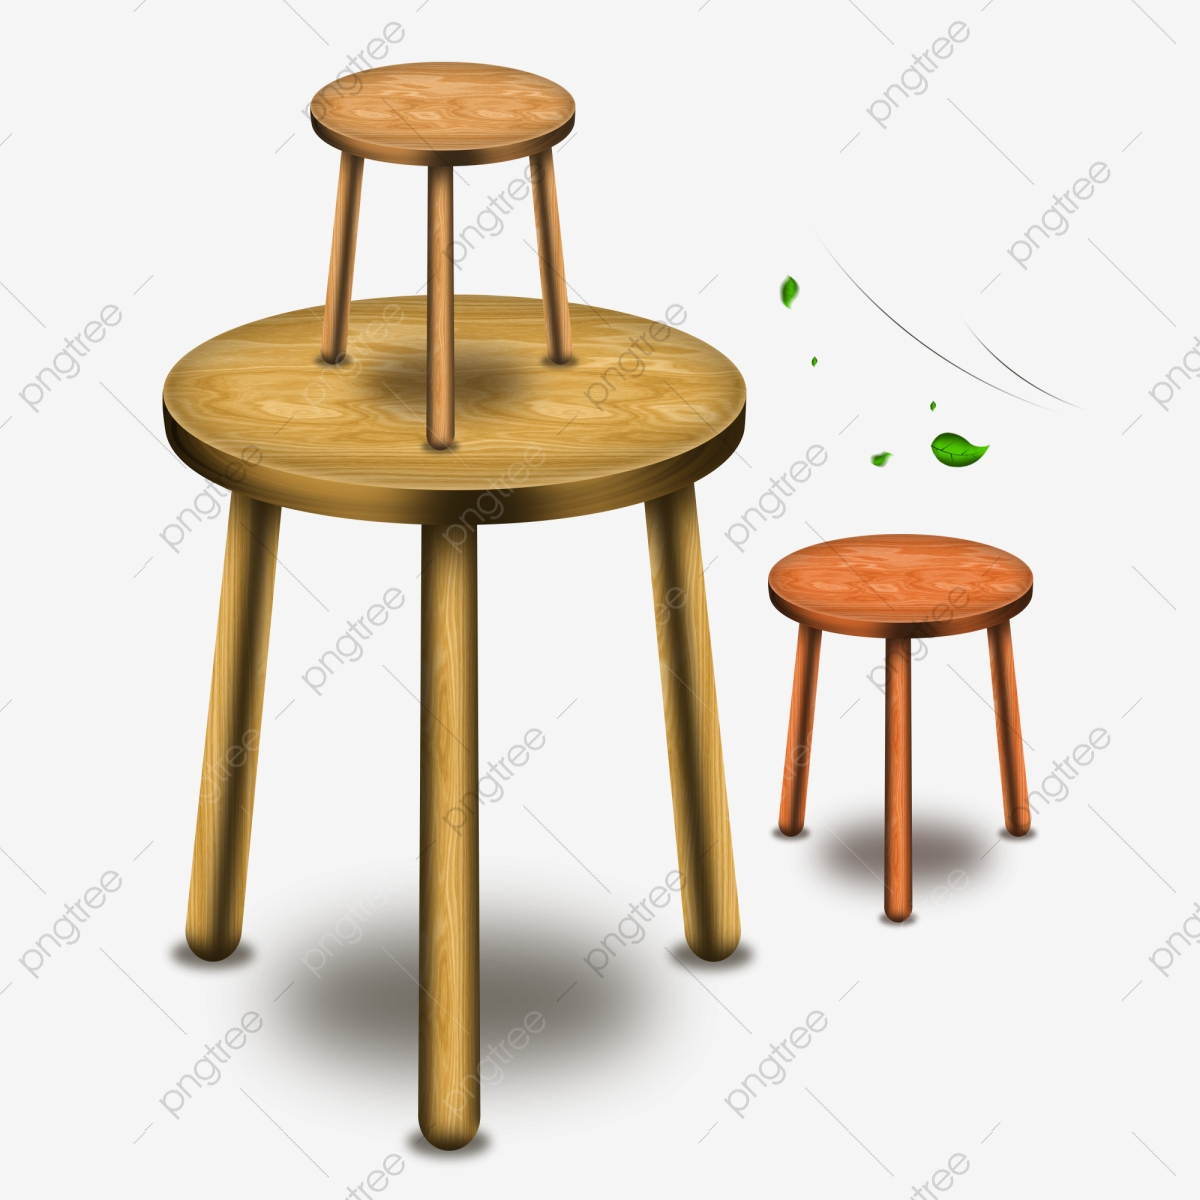 Awesome Living Supplies Round Three Legged Stool Effect Pattern Beatyapartments Chair Design Images Beatyapartmentscom